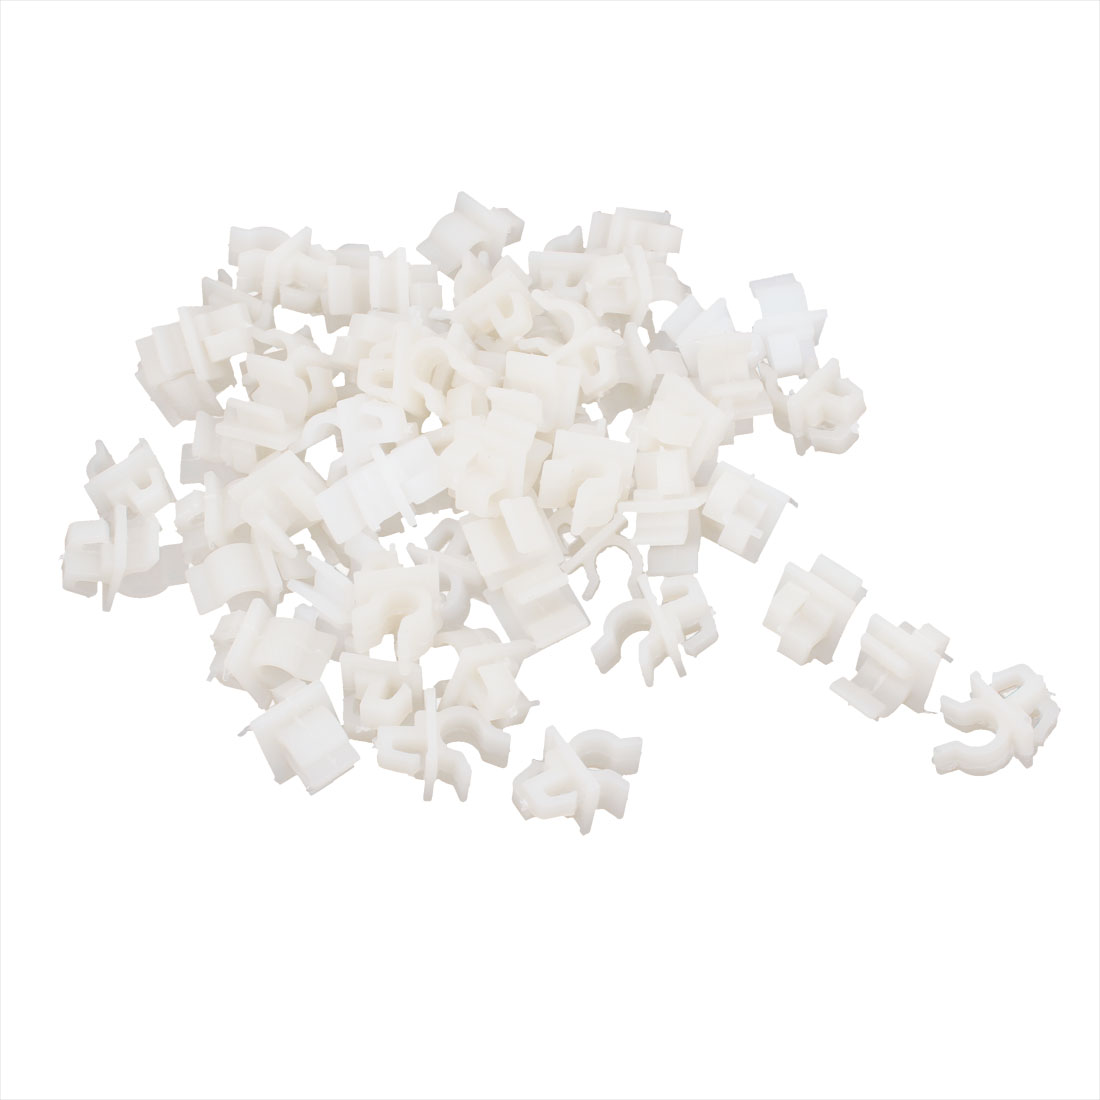 White Plastic 6mm Dia Hole Fastener Door Lock Rod End Clamps 100 Pcs for Car Auto